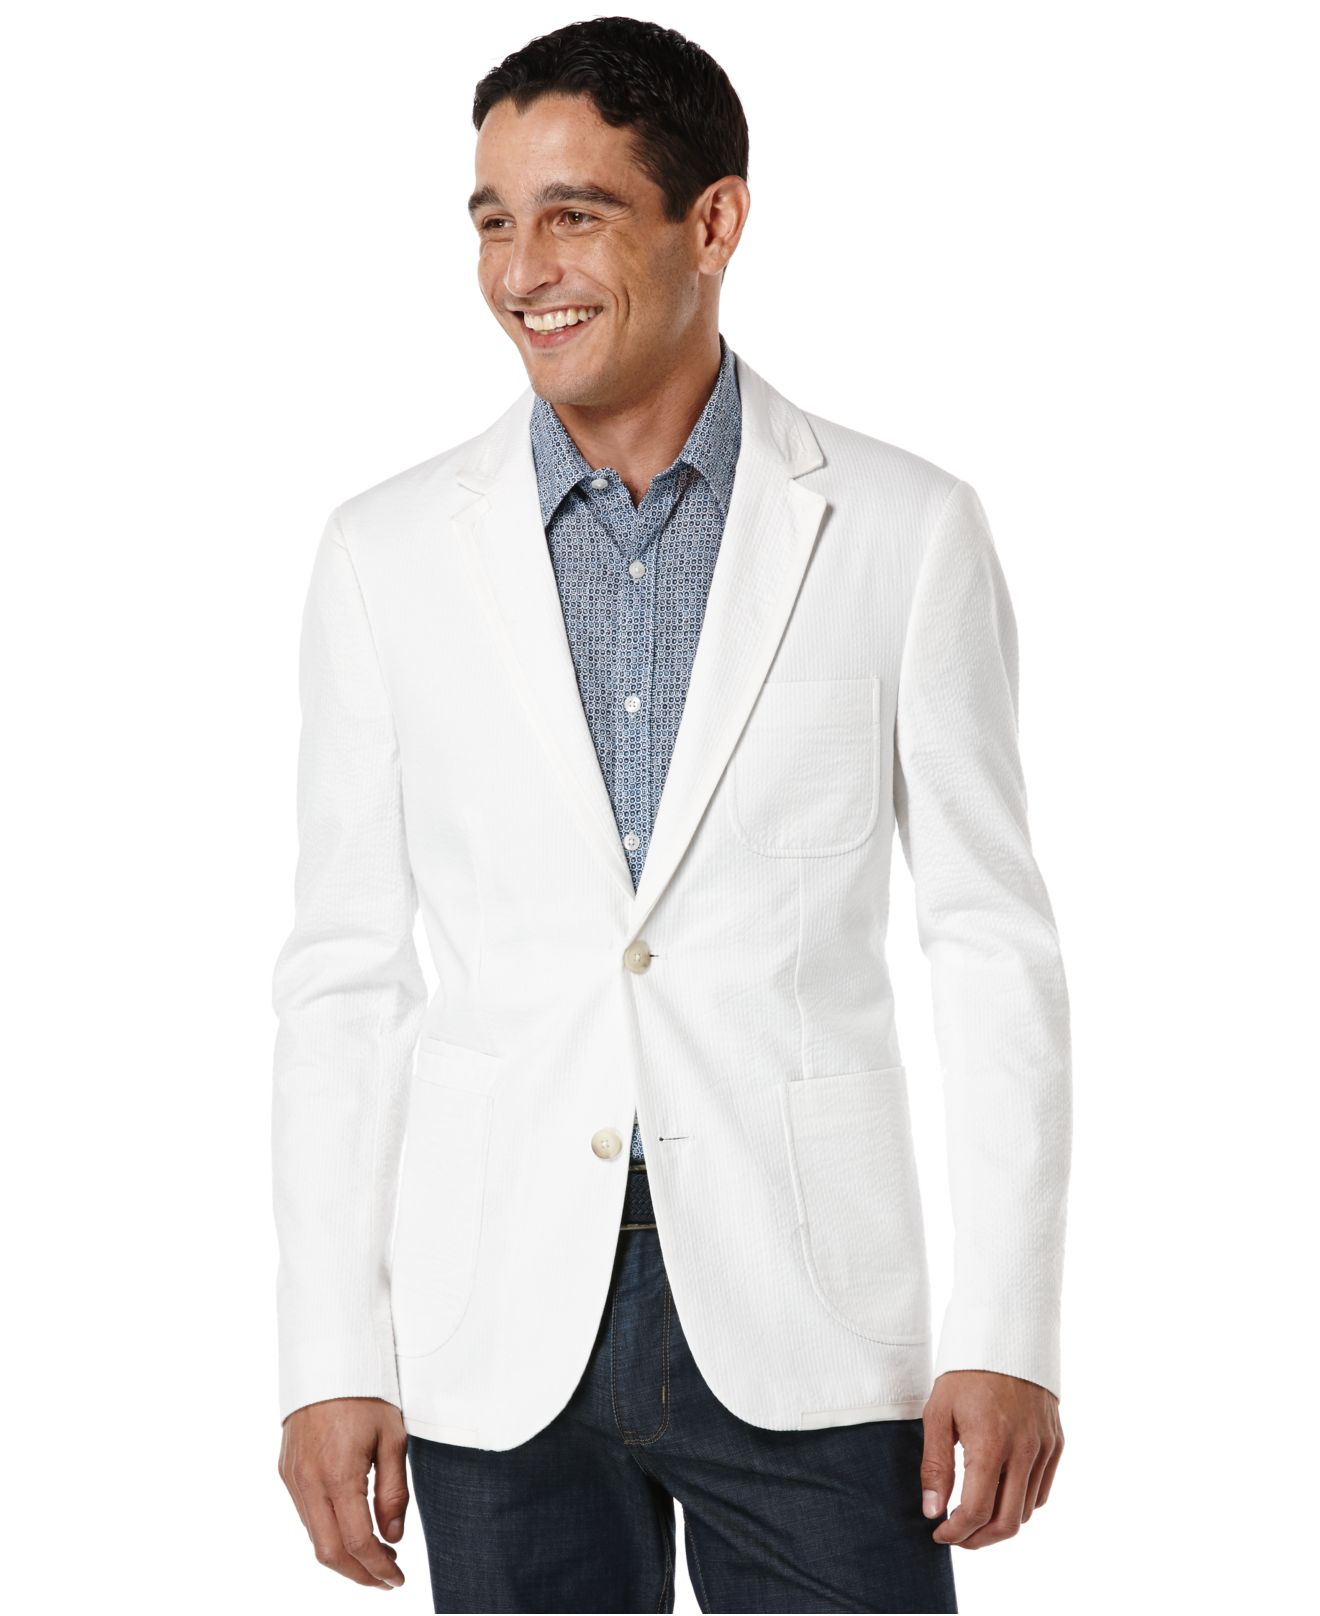 Luxury Fashion for Men: Super Sharp 2-Piece Slim Fit Blazer & Trousers Louis Raphael Men's Slim Fit Two Button Side Vent Jacket. by Louis Raphael. $ MOGU Mens Slim Fit Solid White Blazers. by MOGU. $ - $ $ 47 $ 79 99 Prime. FREE Shipping on eligible orders. Some sizes/colors are Prime eligible.